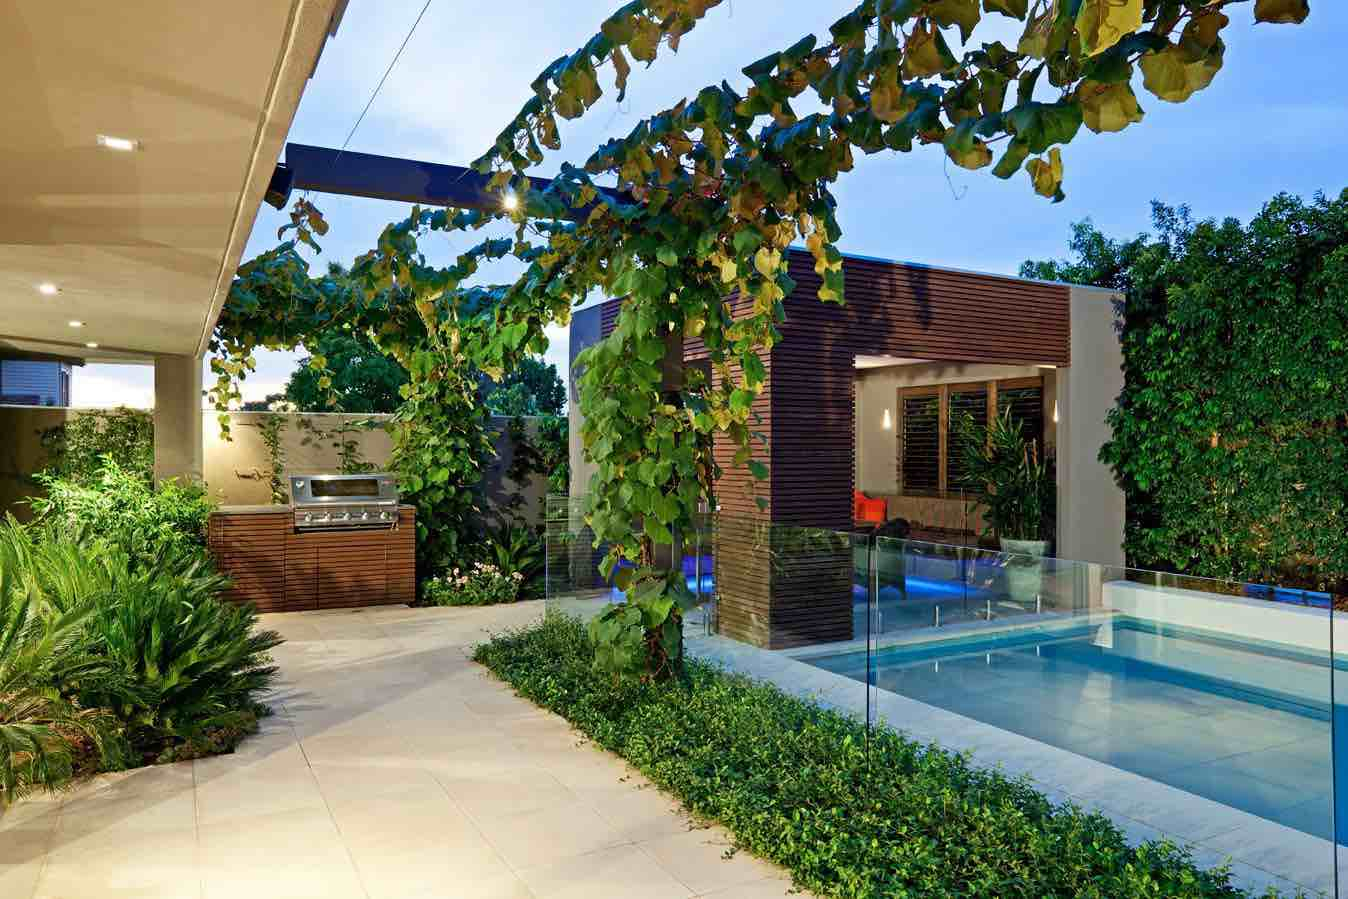 41 backyard design ideas for small yards worthminer Small backyard designs pictures